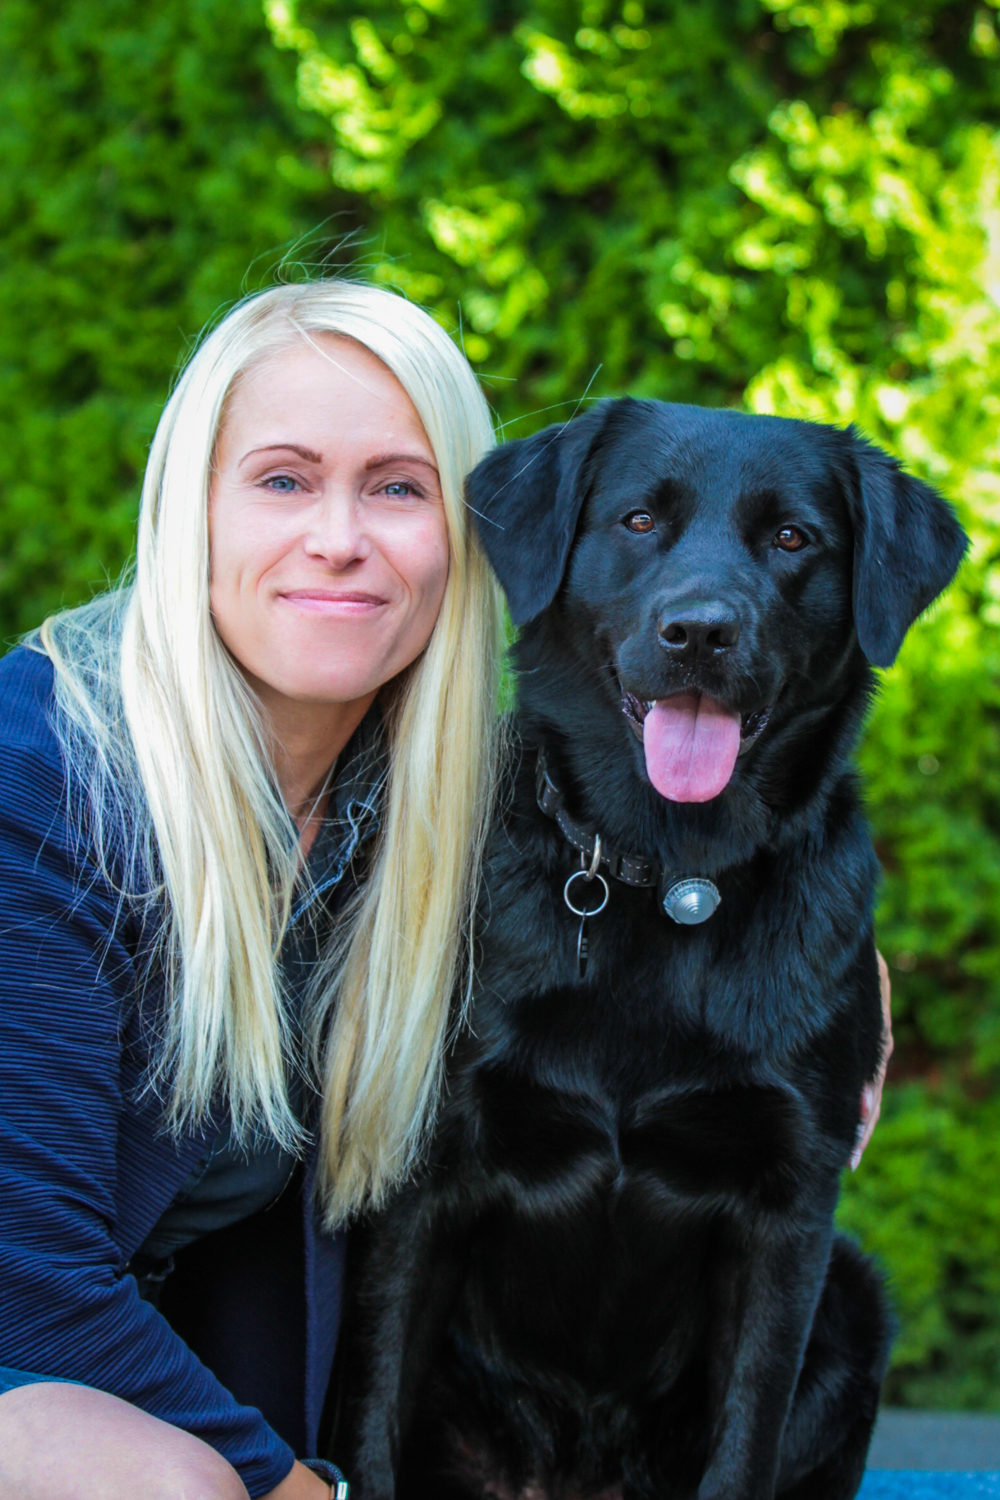 Owner and her pet labrador